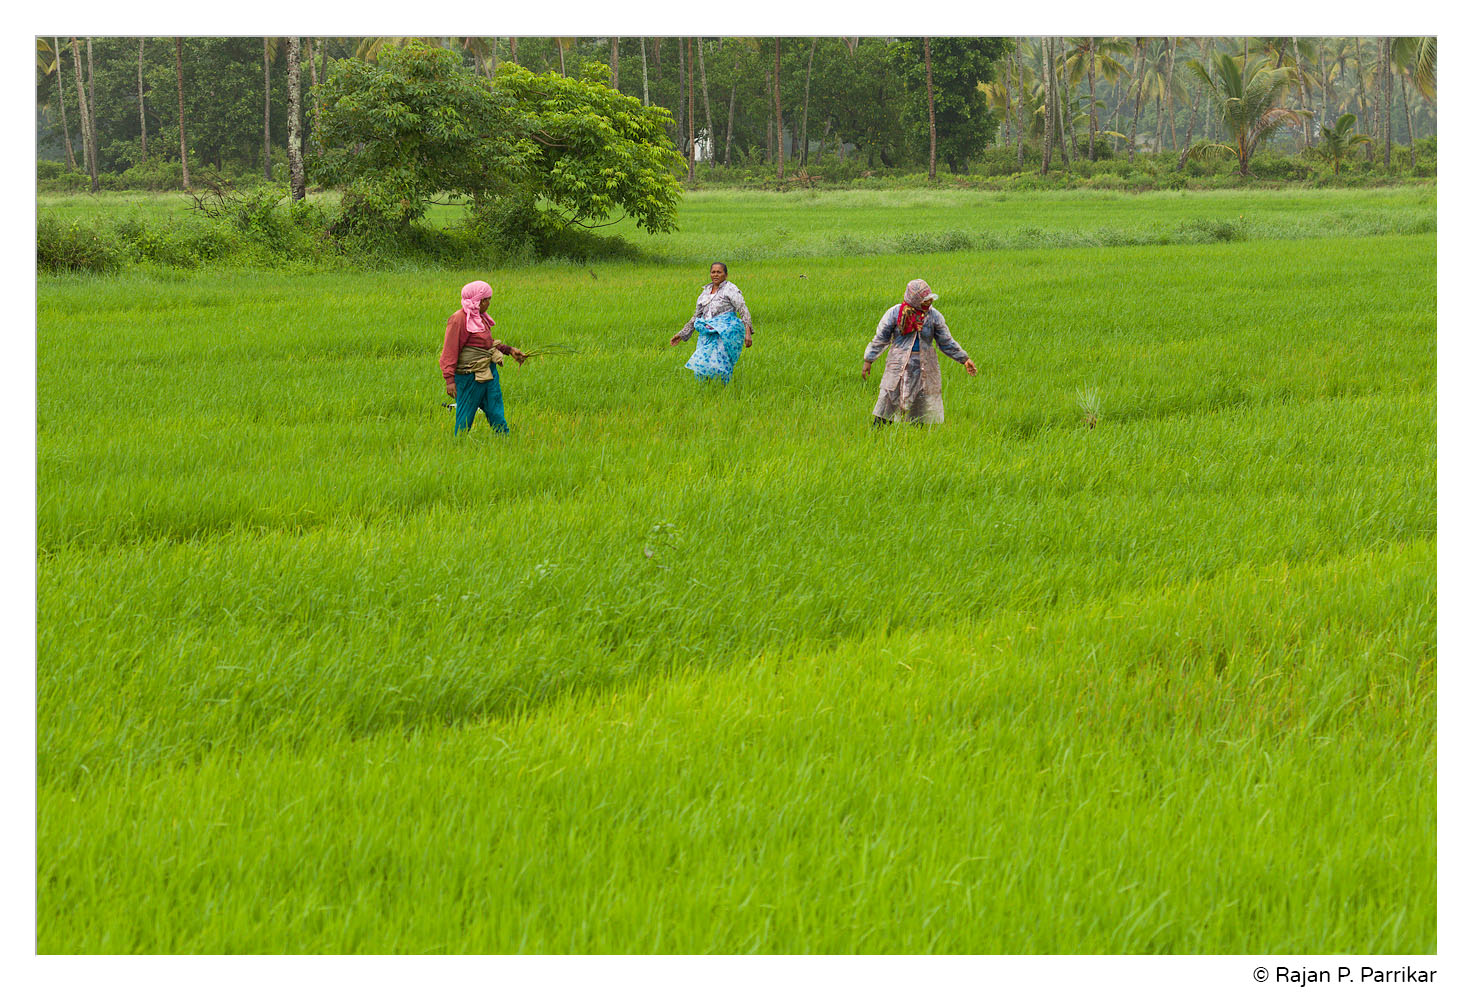 Paddy field in Cansaulim, Goa